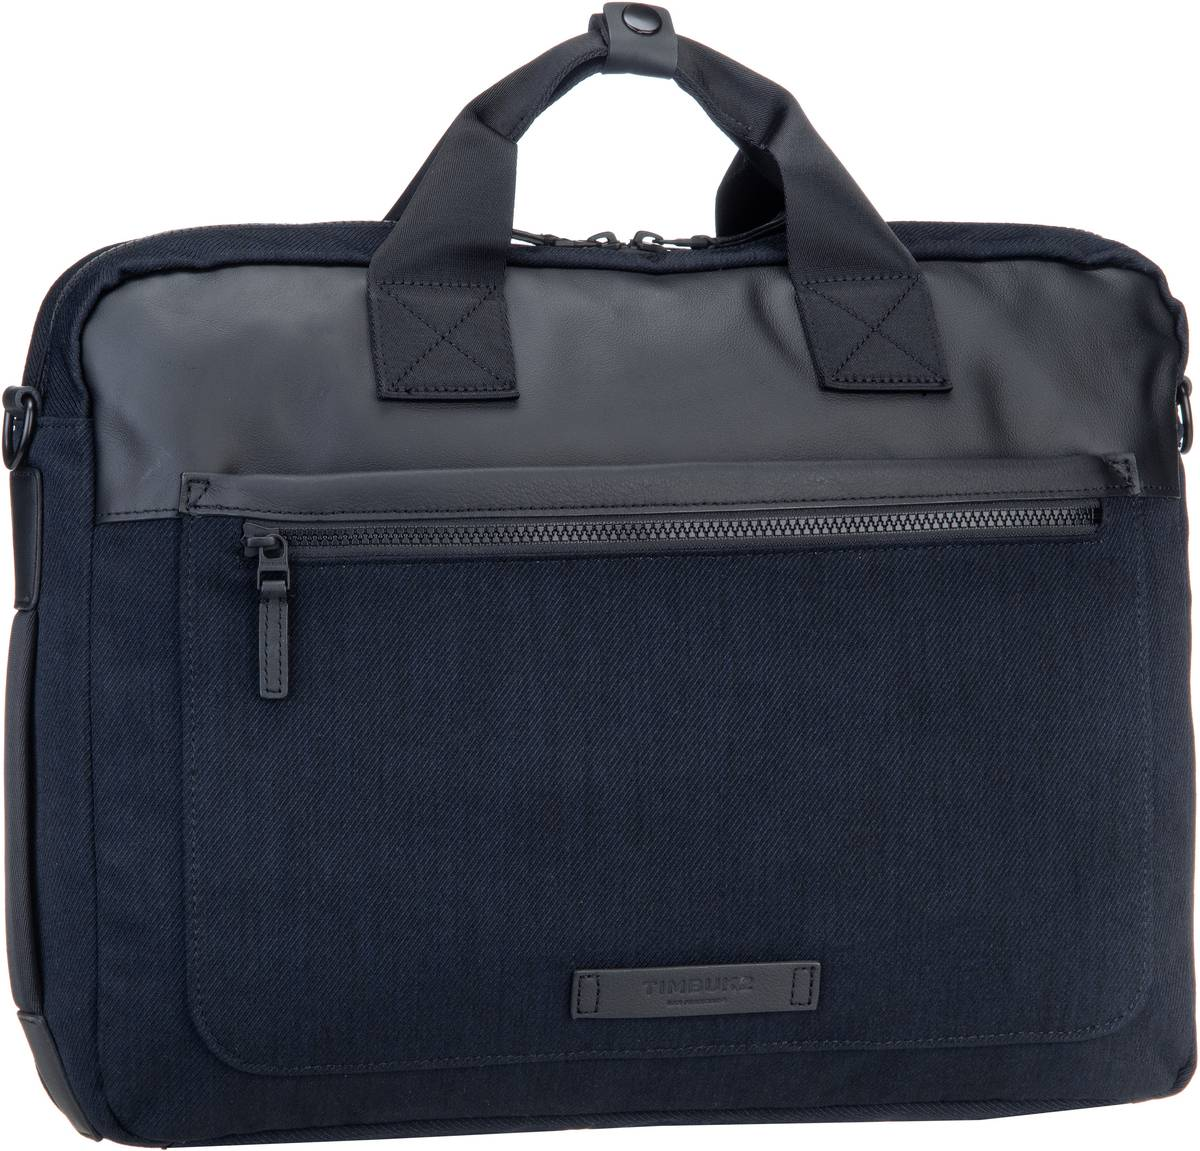 Businesstaschen für Frauen - Timbuk2 Aktentasche Duo Pack Night Shadow (16 Liter)  - Onlineshop Taschenkaufhaus